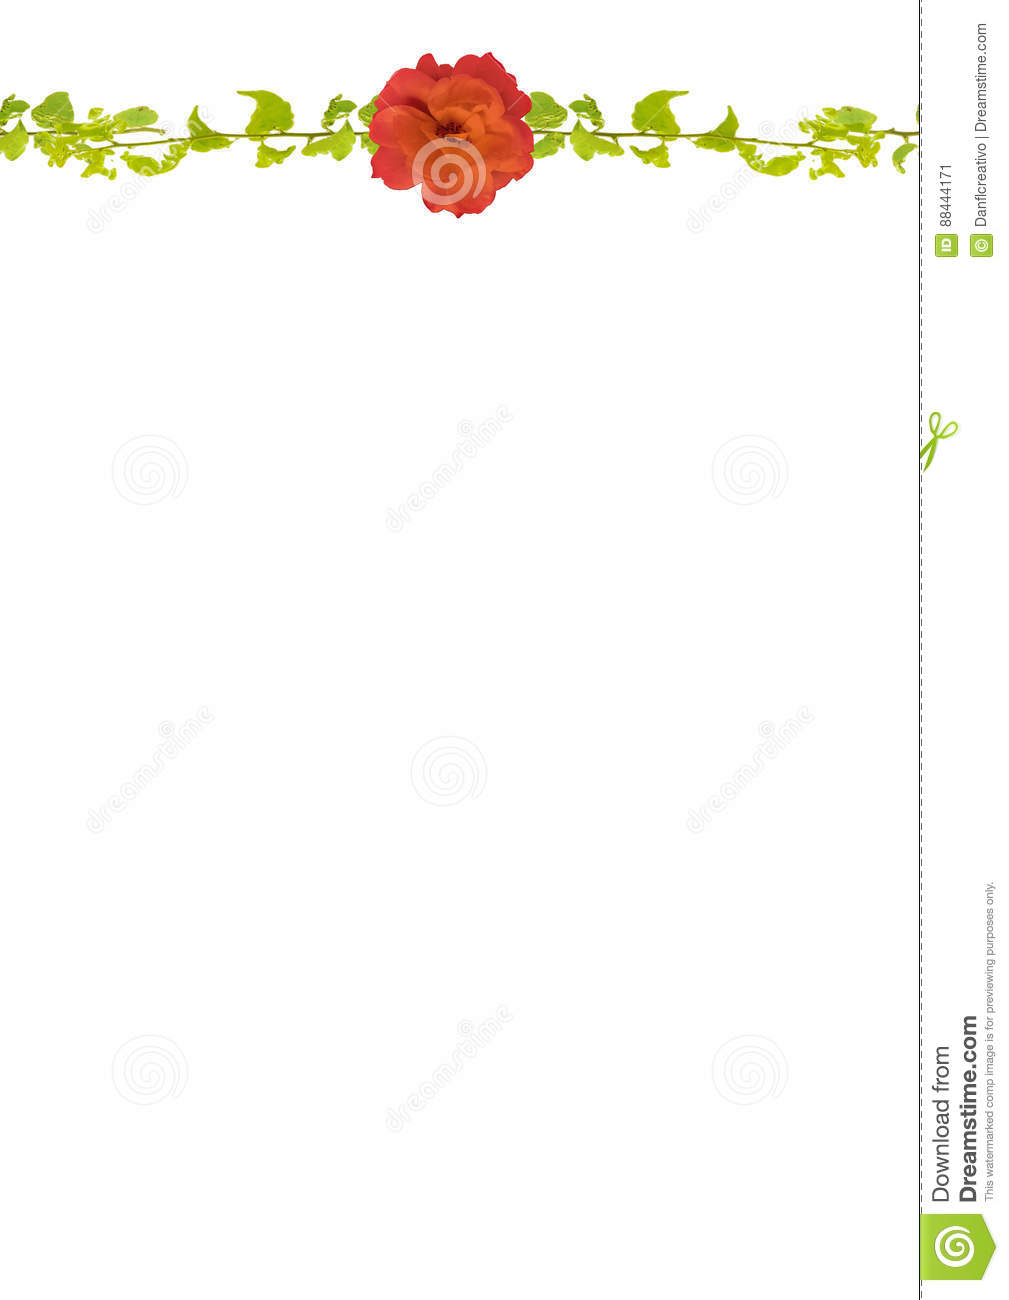 stationery background with decorated floral borders stock